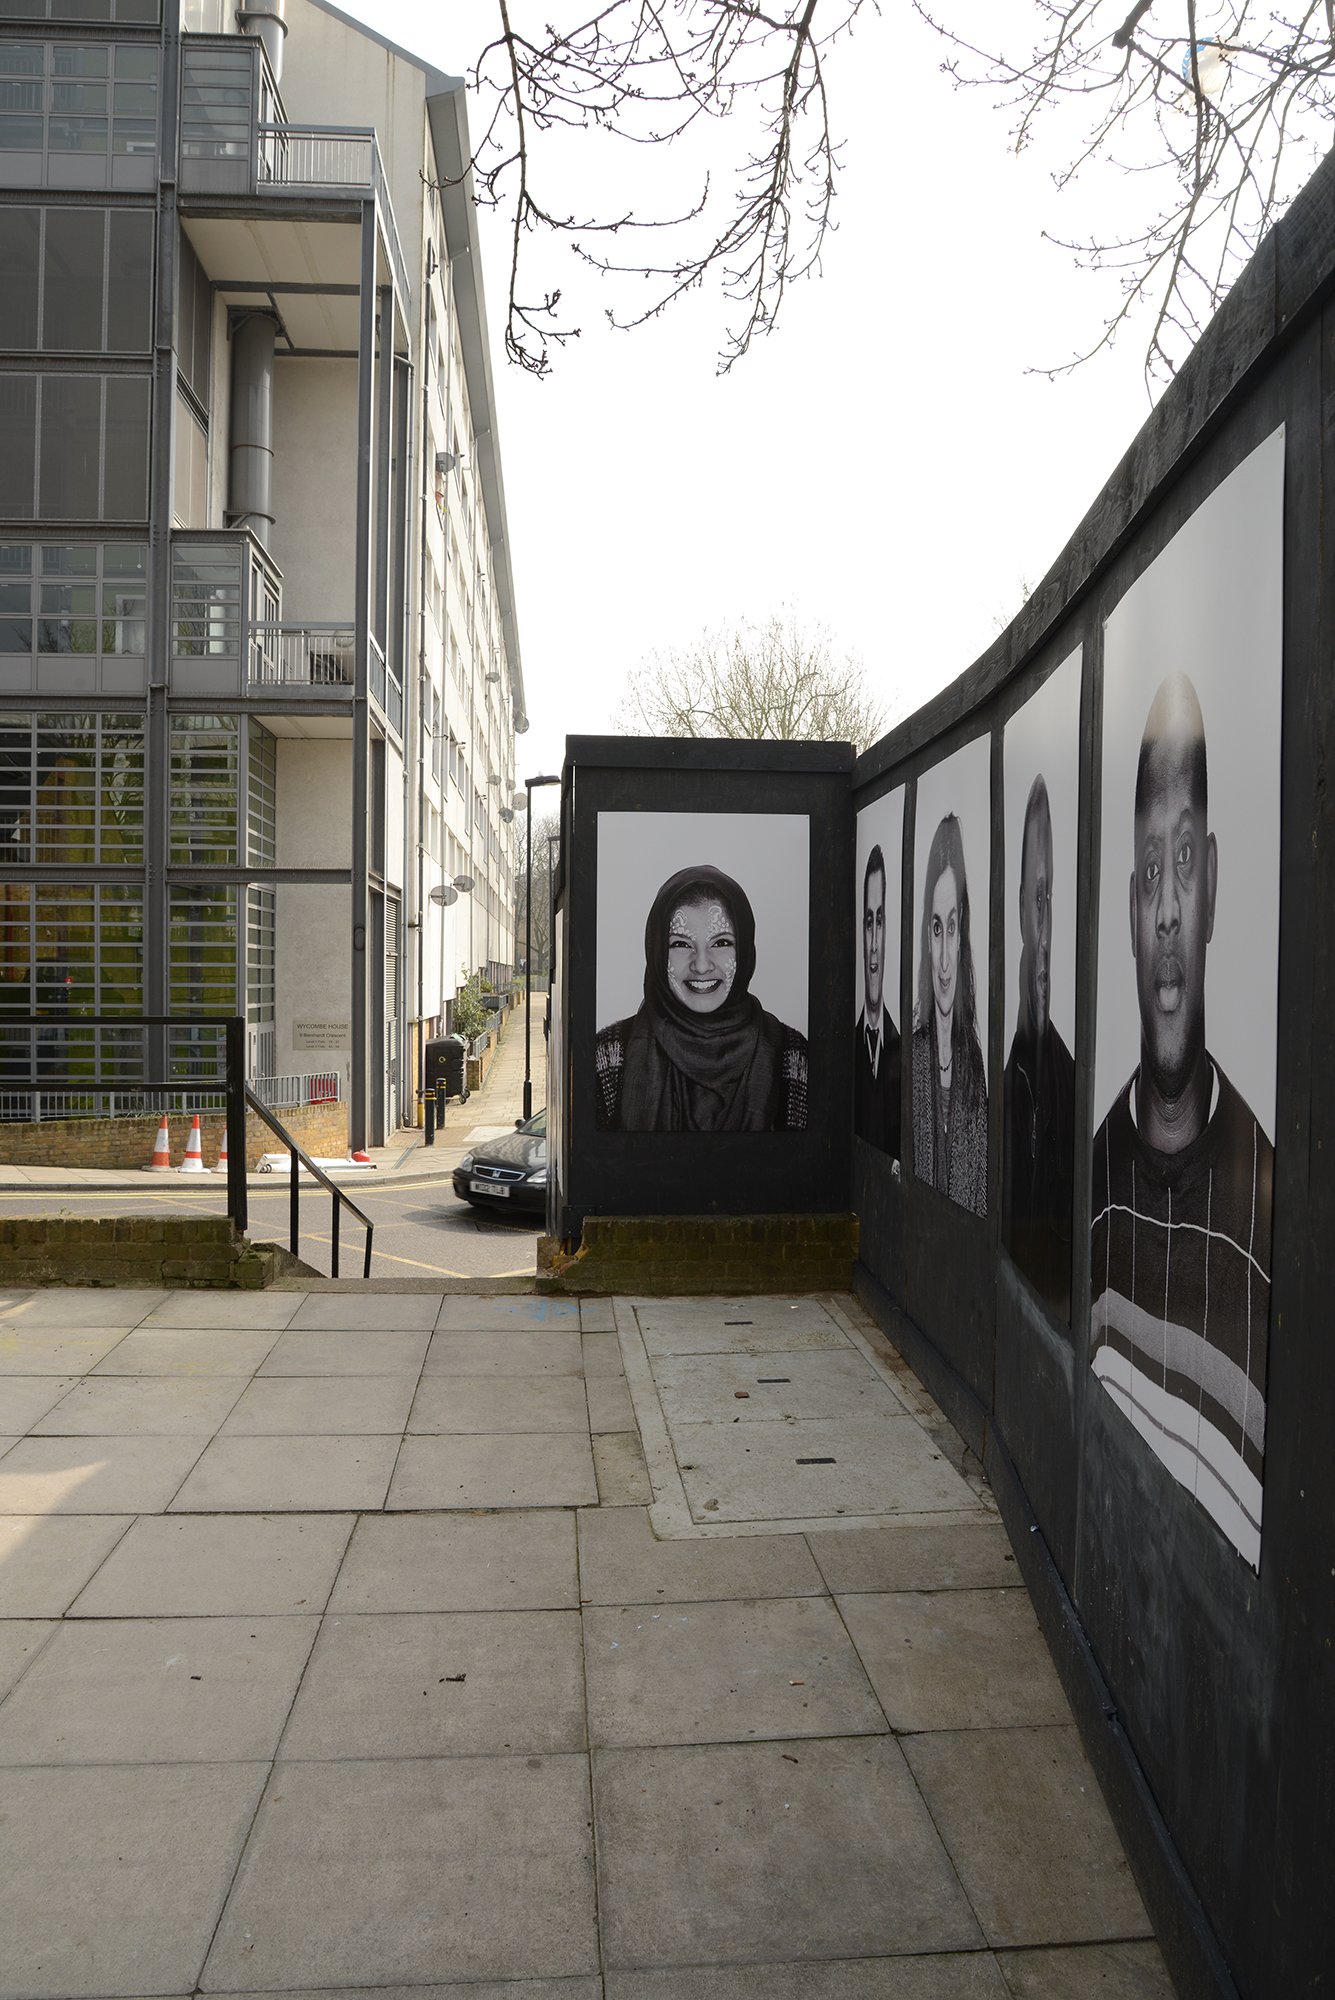 Face Forward is a public art exhibition created by award-winning photographic artist Emma Blau that utilises building site hoardings in the Church Street area of Westminster, which is currently undergoing regeneration. A resident herself, Blau's large-scale photographic portraits feature local people who will be affected by the huge transformations taking place in their neighbourhood. Face Forward is on display throughout 2016.